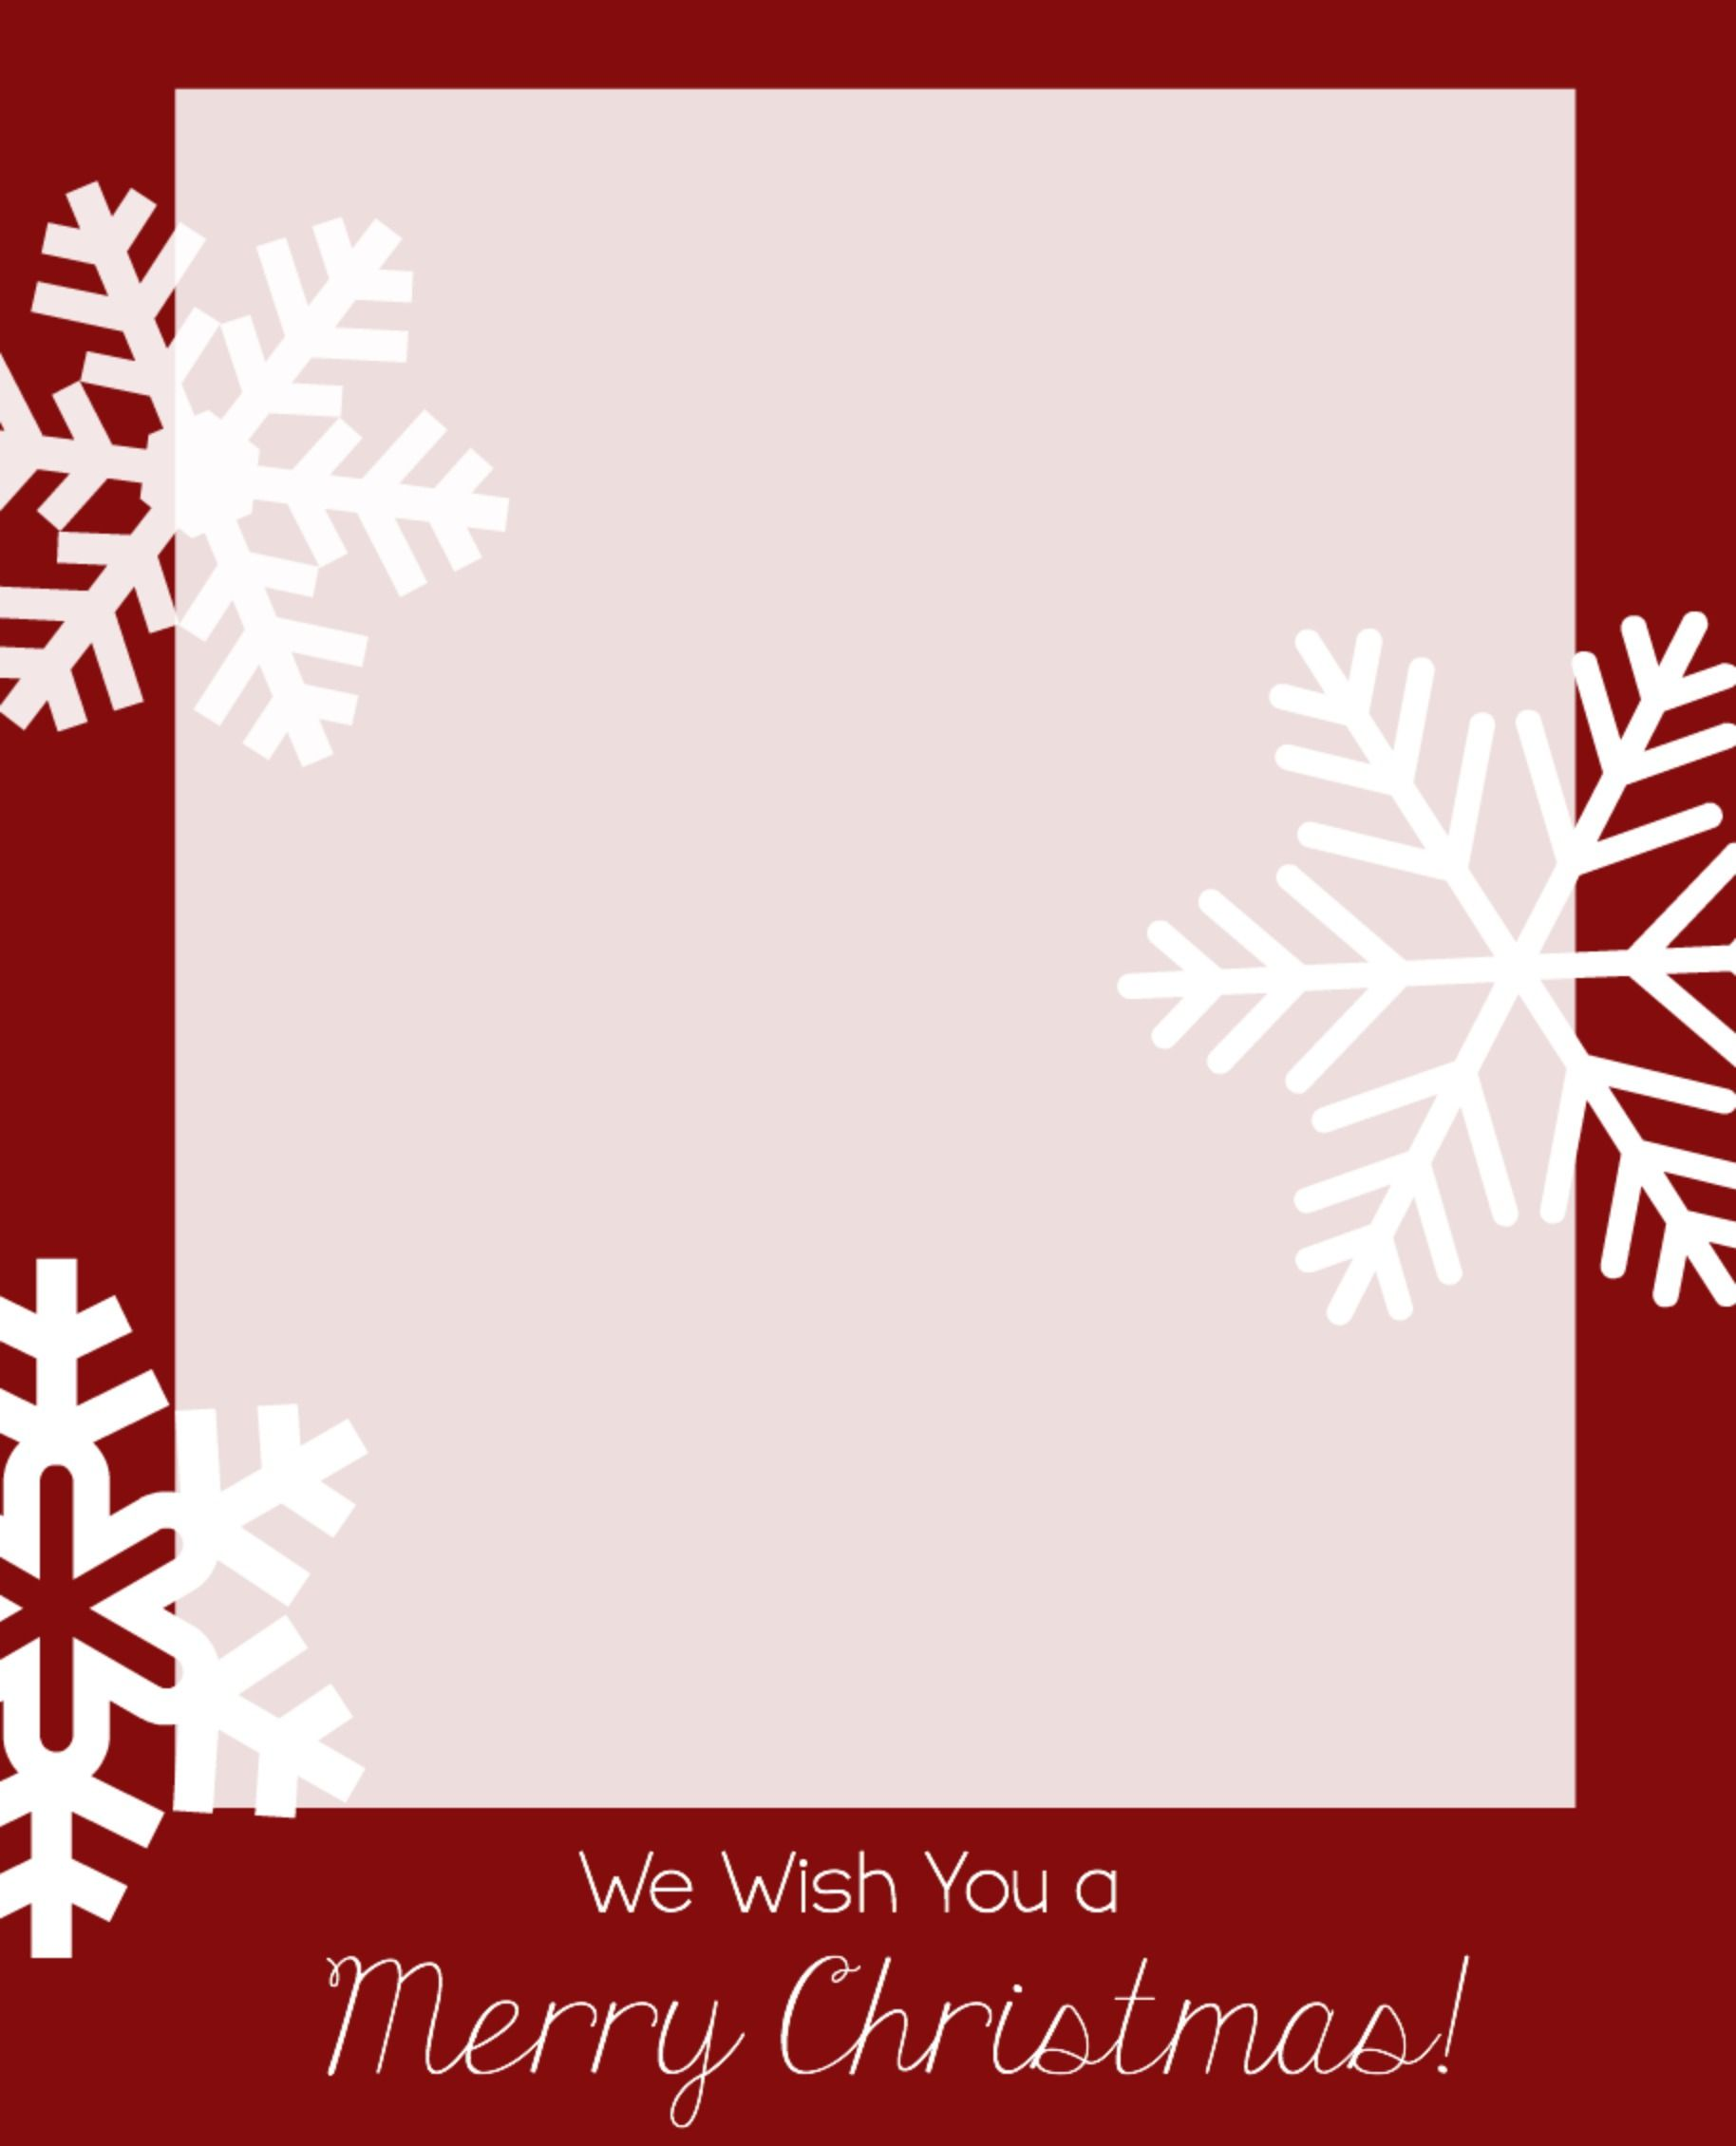 Free Christmas Card Templates Christmas Photo Card Template Christmas Cards Free Printable Holiday Card